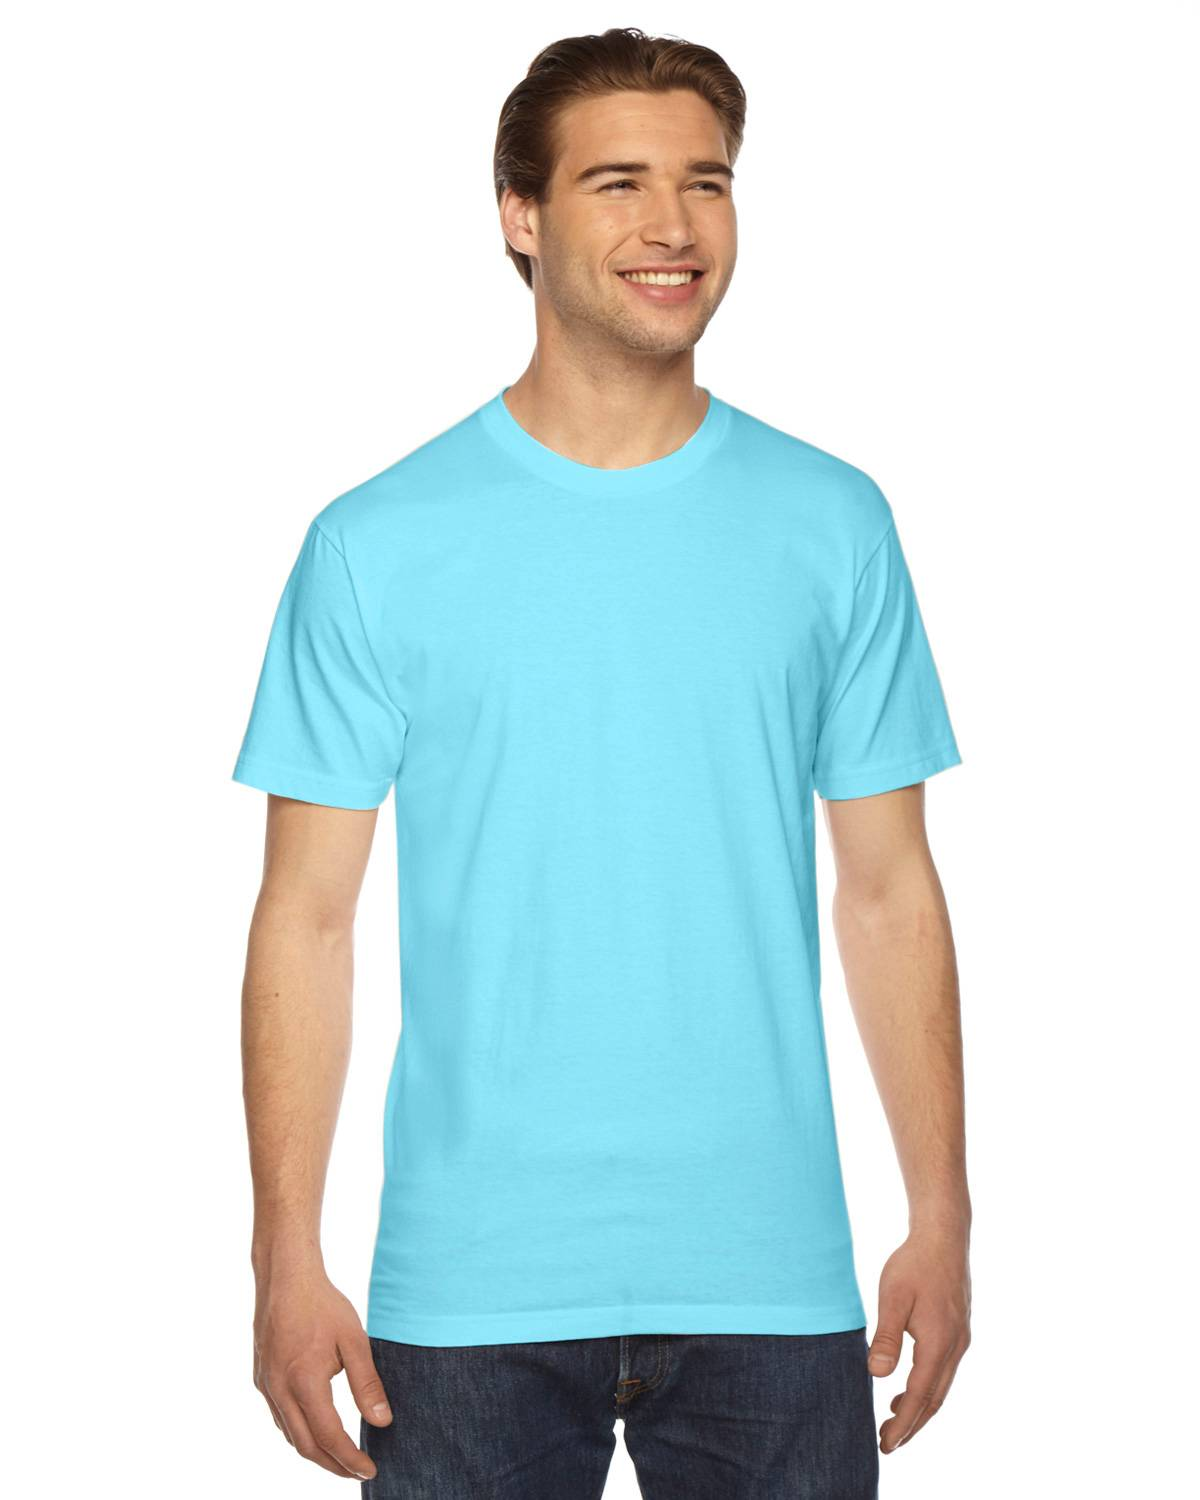 American Apparel 2001W Unisex Fine Jersey T-Shirt - Light Aqua - XL 2001W